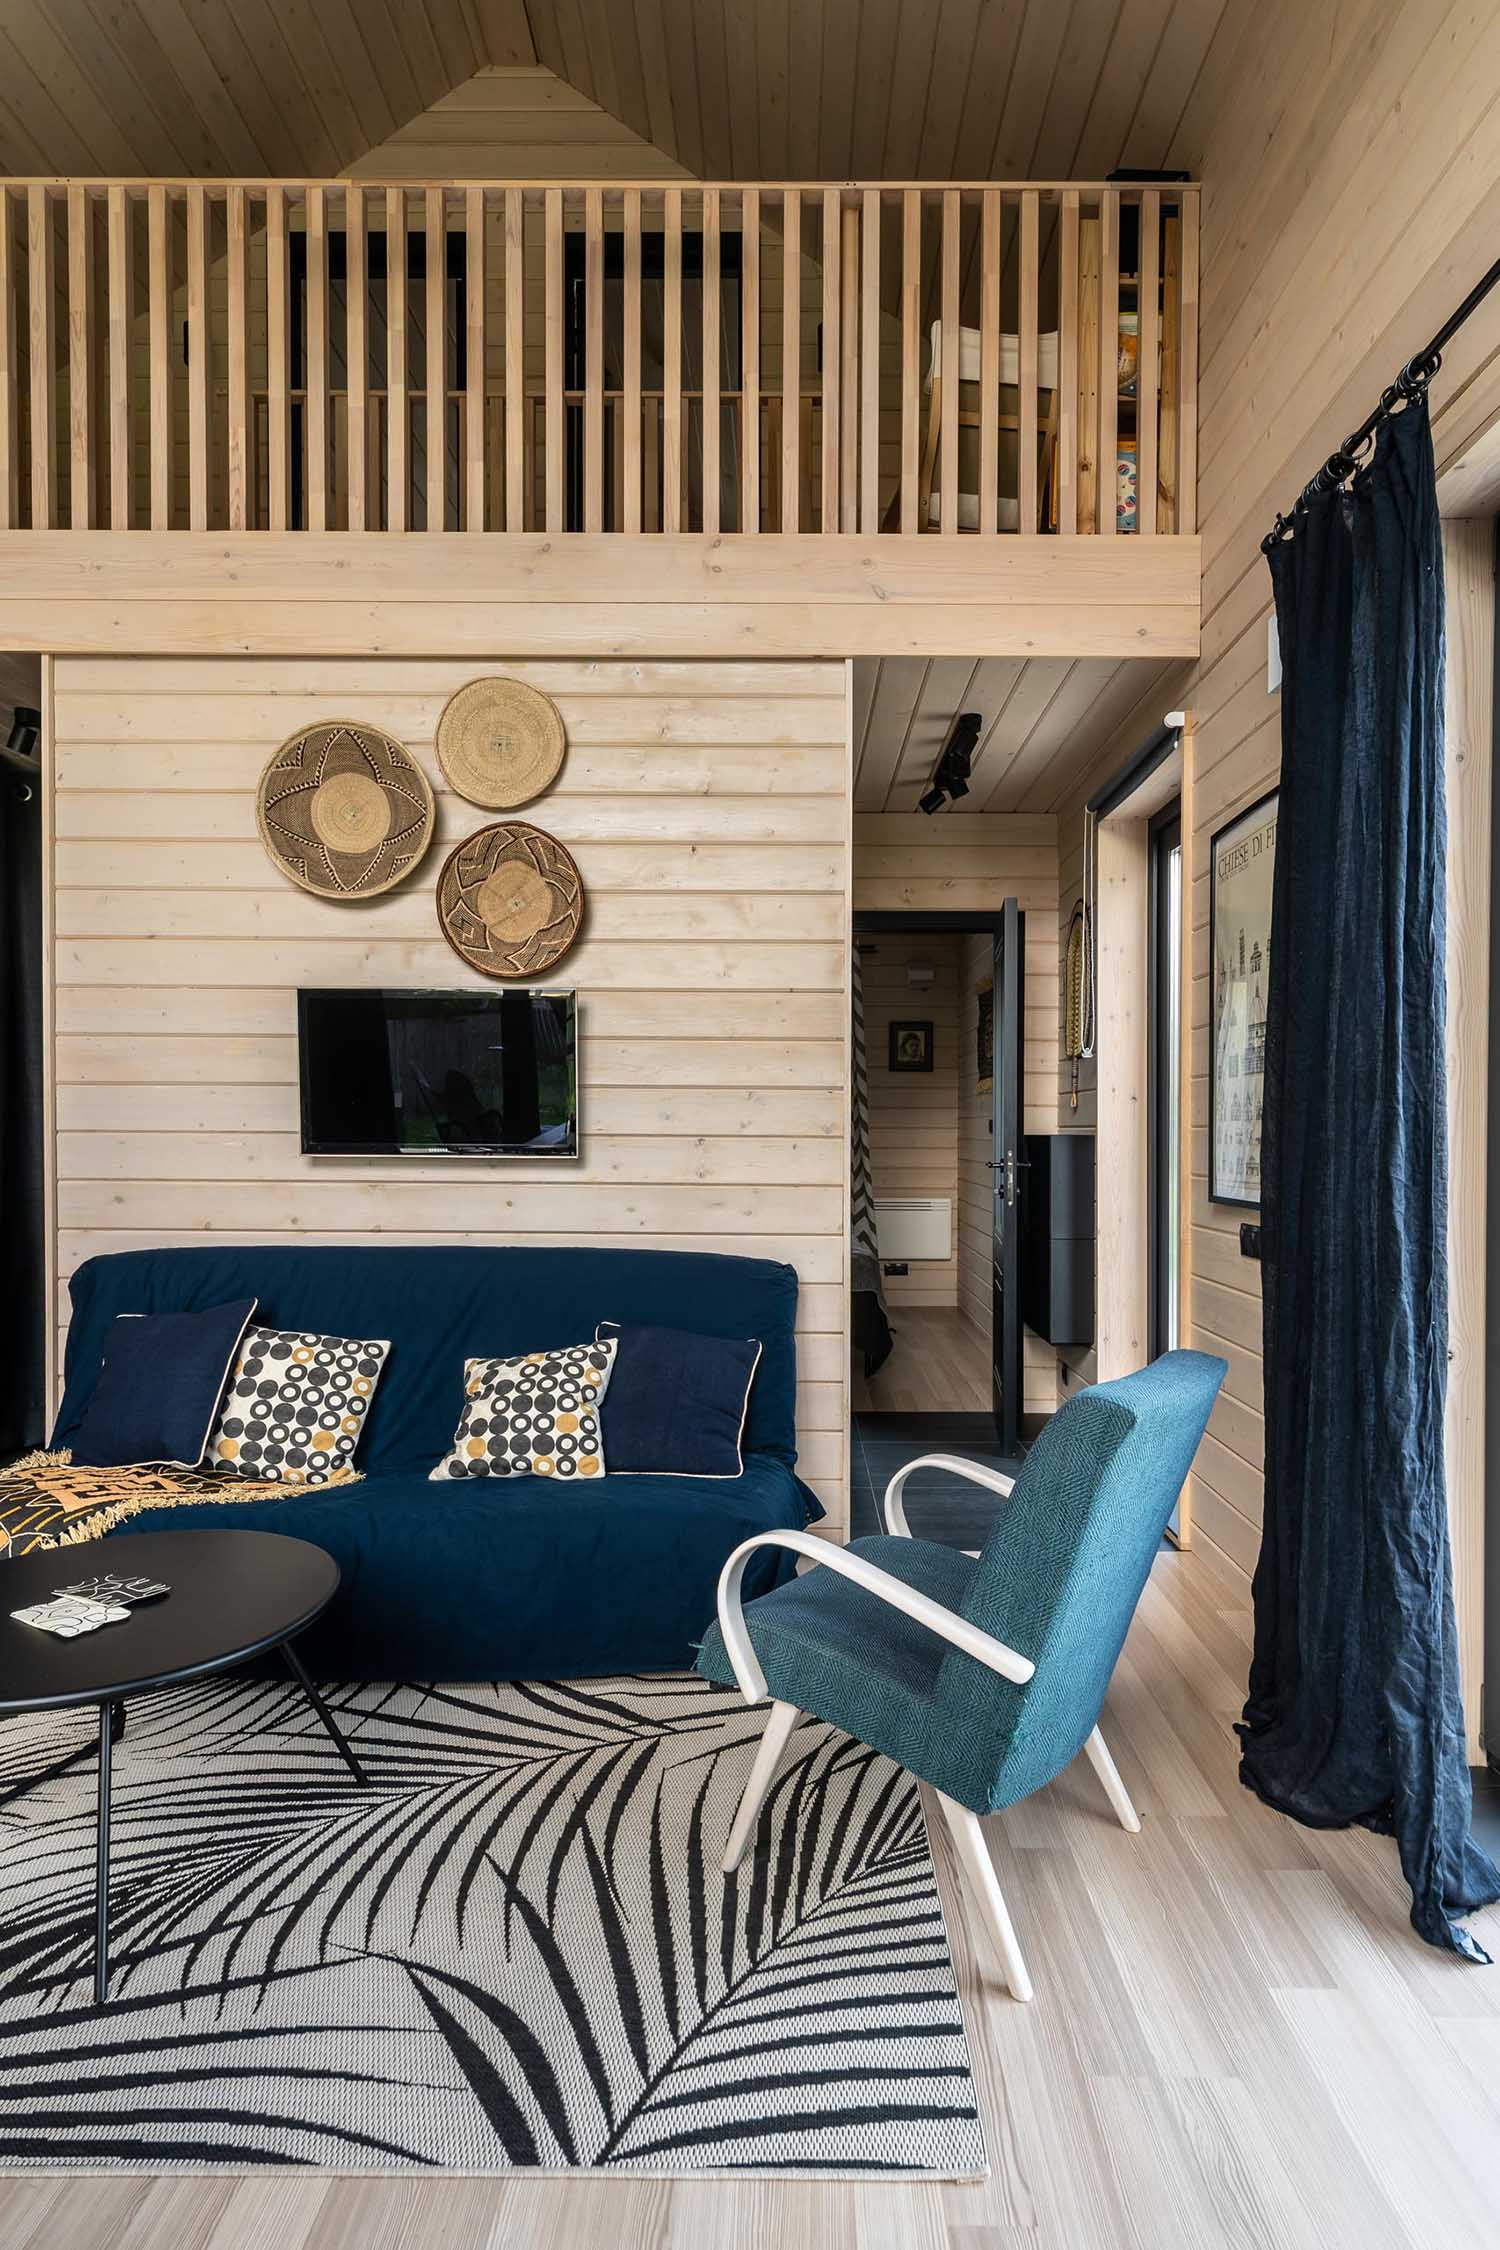 A modern barn-inspired living room with tongue and groove wood siding and black accents.